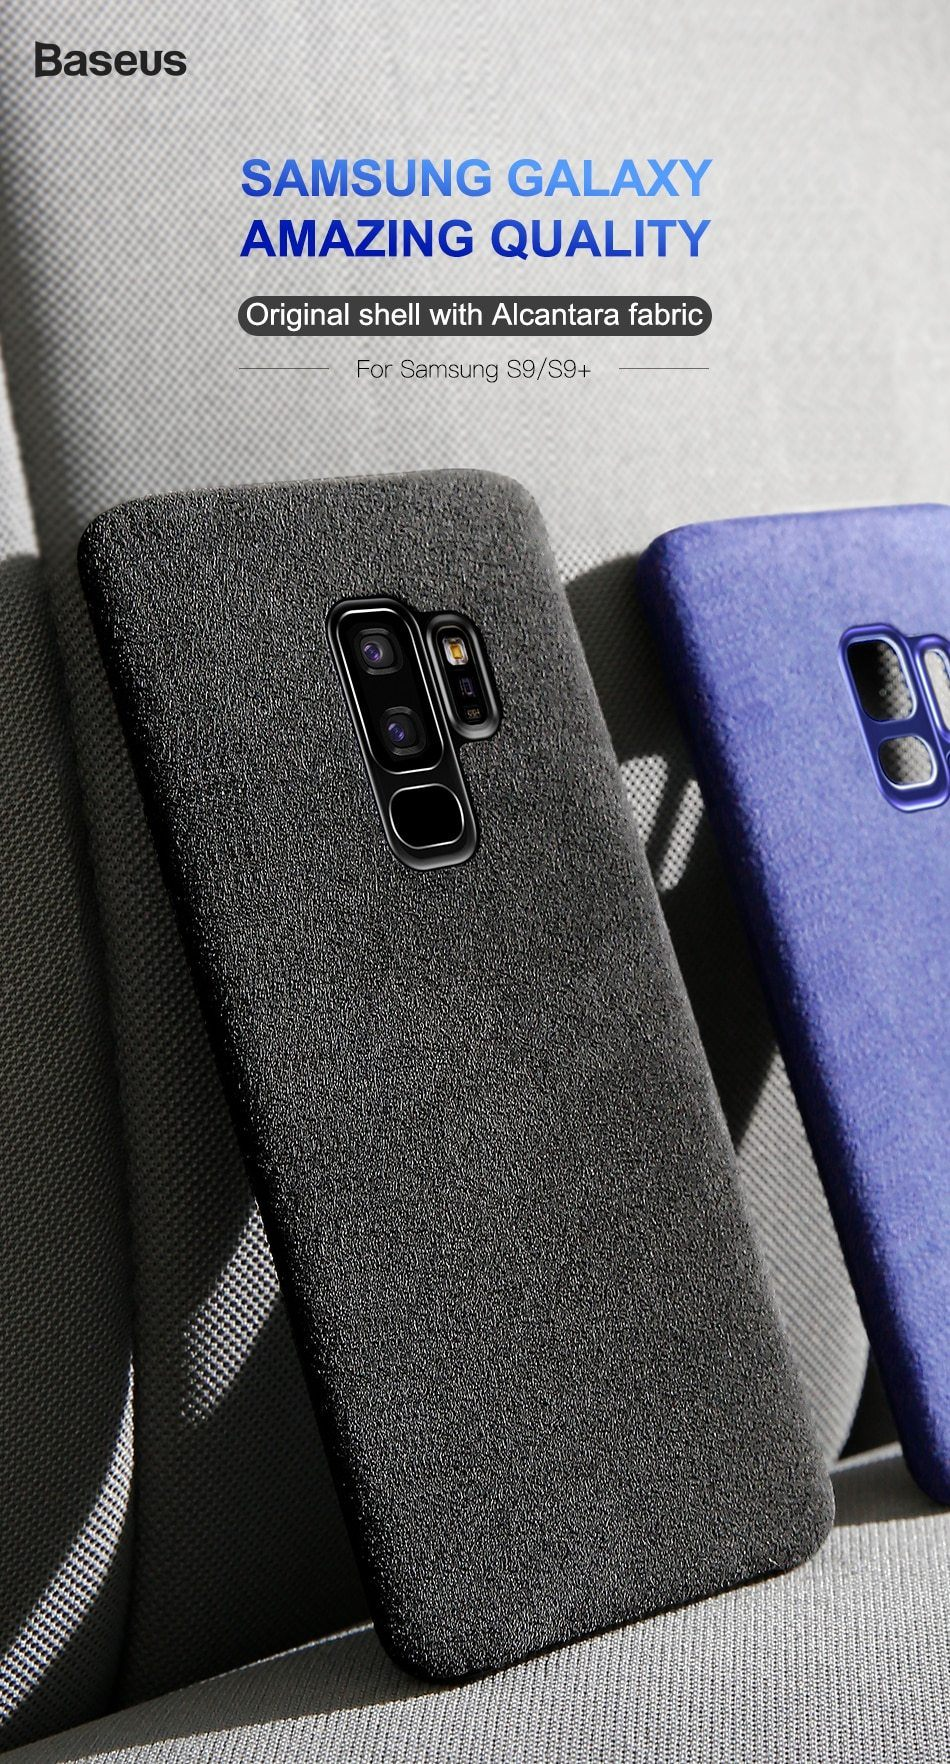 Baseus Retro Soft Touch Case (Samsung S9 & S9+)